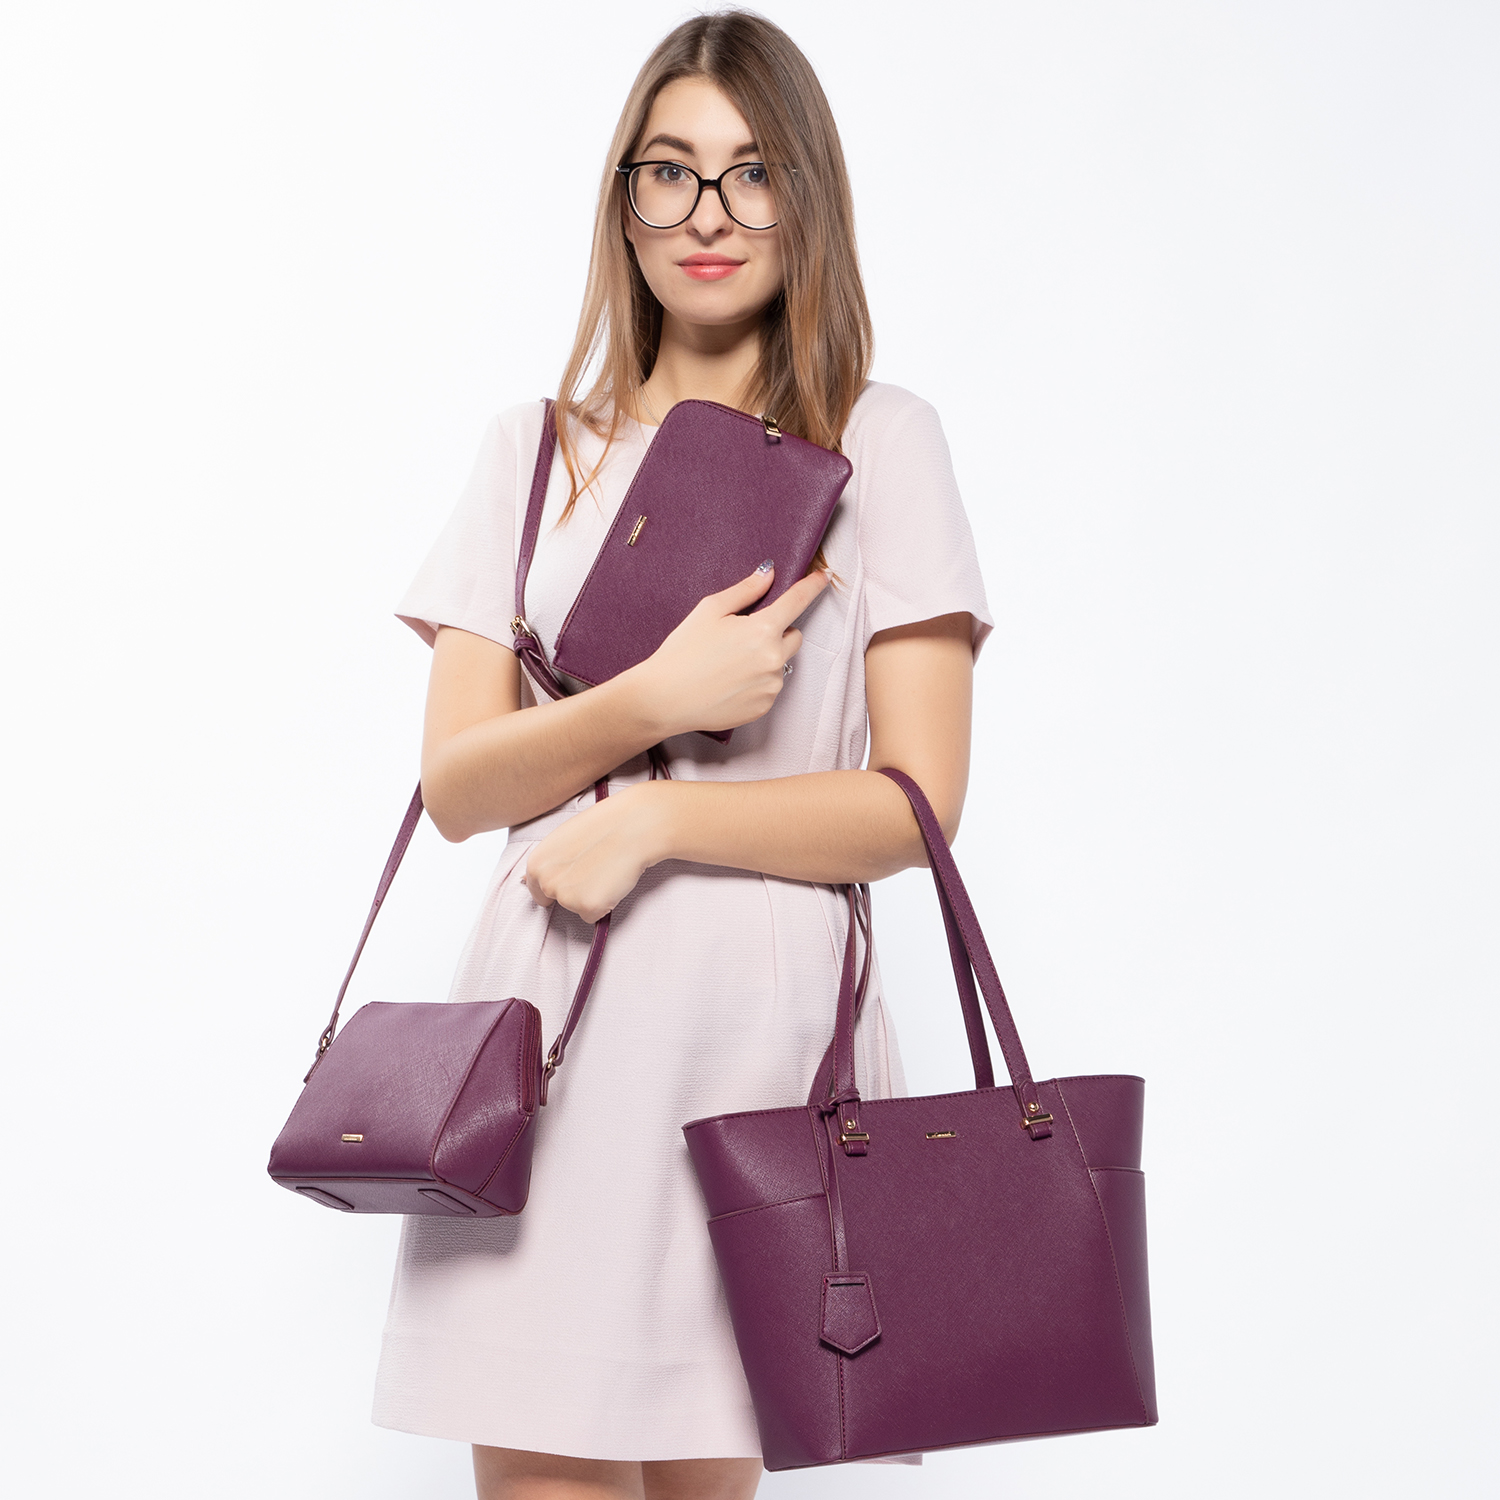 Habcae71b44a44937a218a310b4638a5eZ - women shoulder bags crossbody bags for ladies large tote bag set 3 pcs clutch and purse luxury handbag women